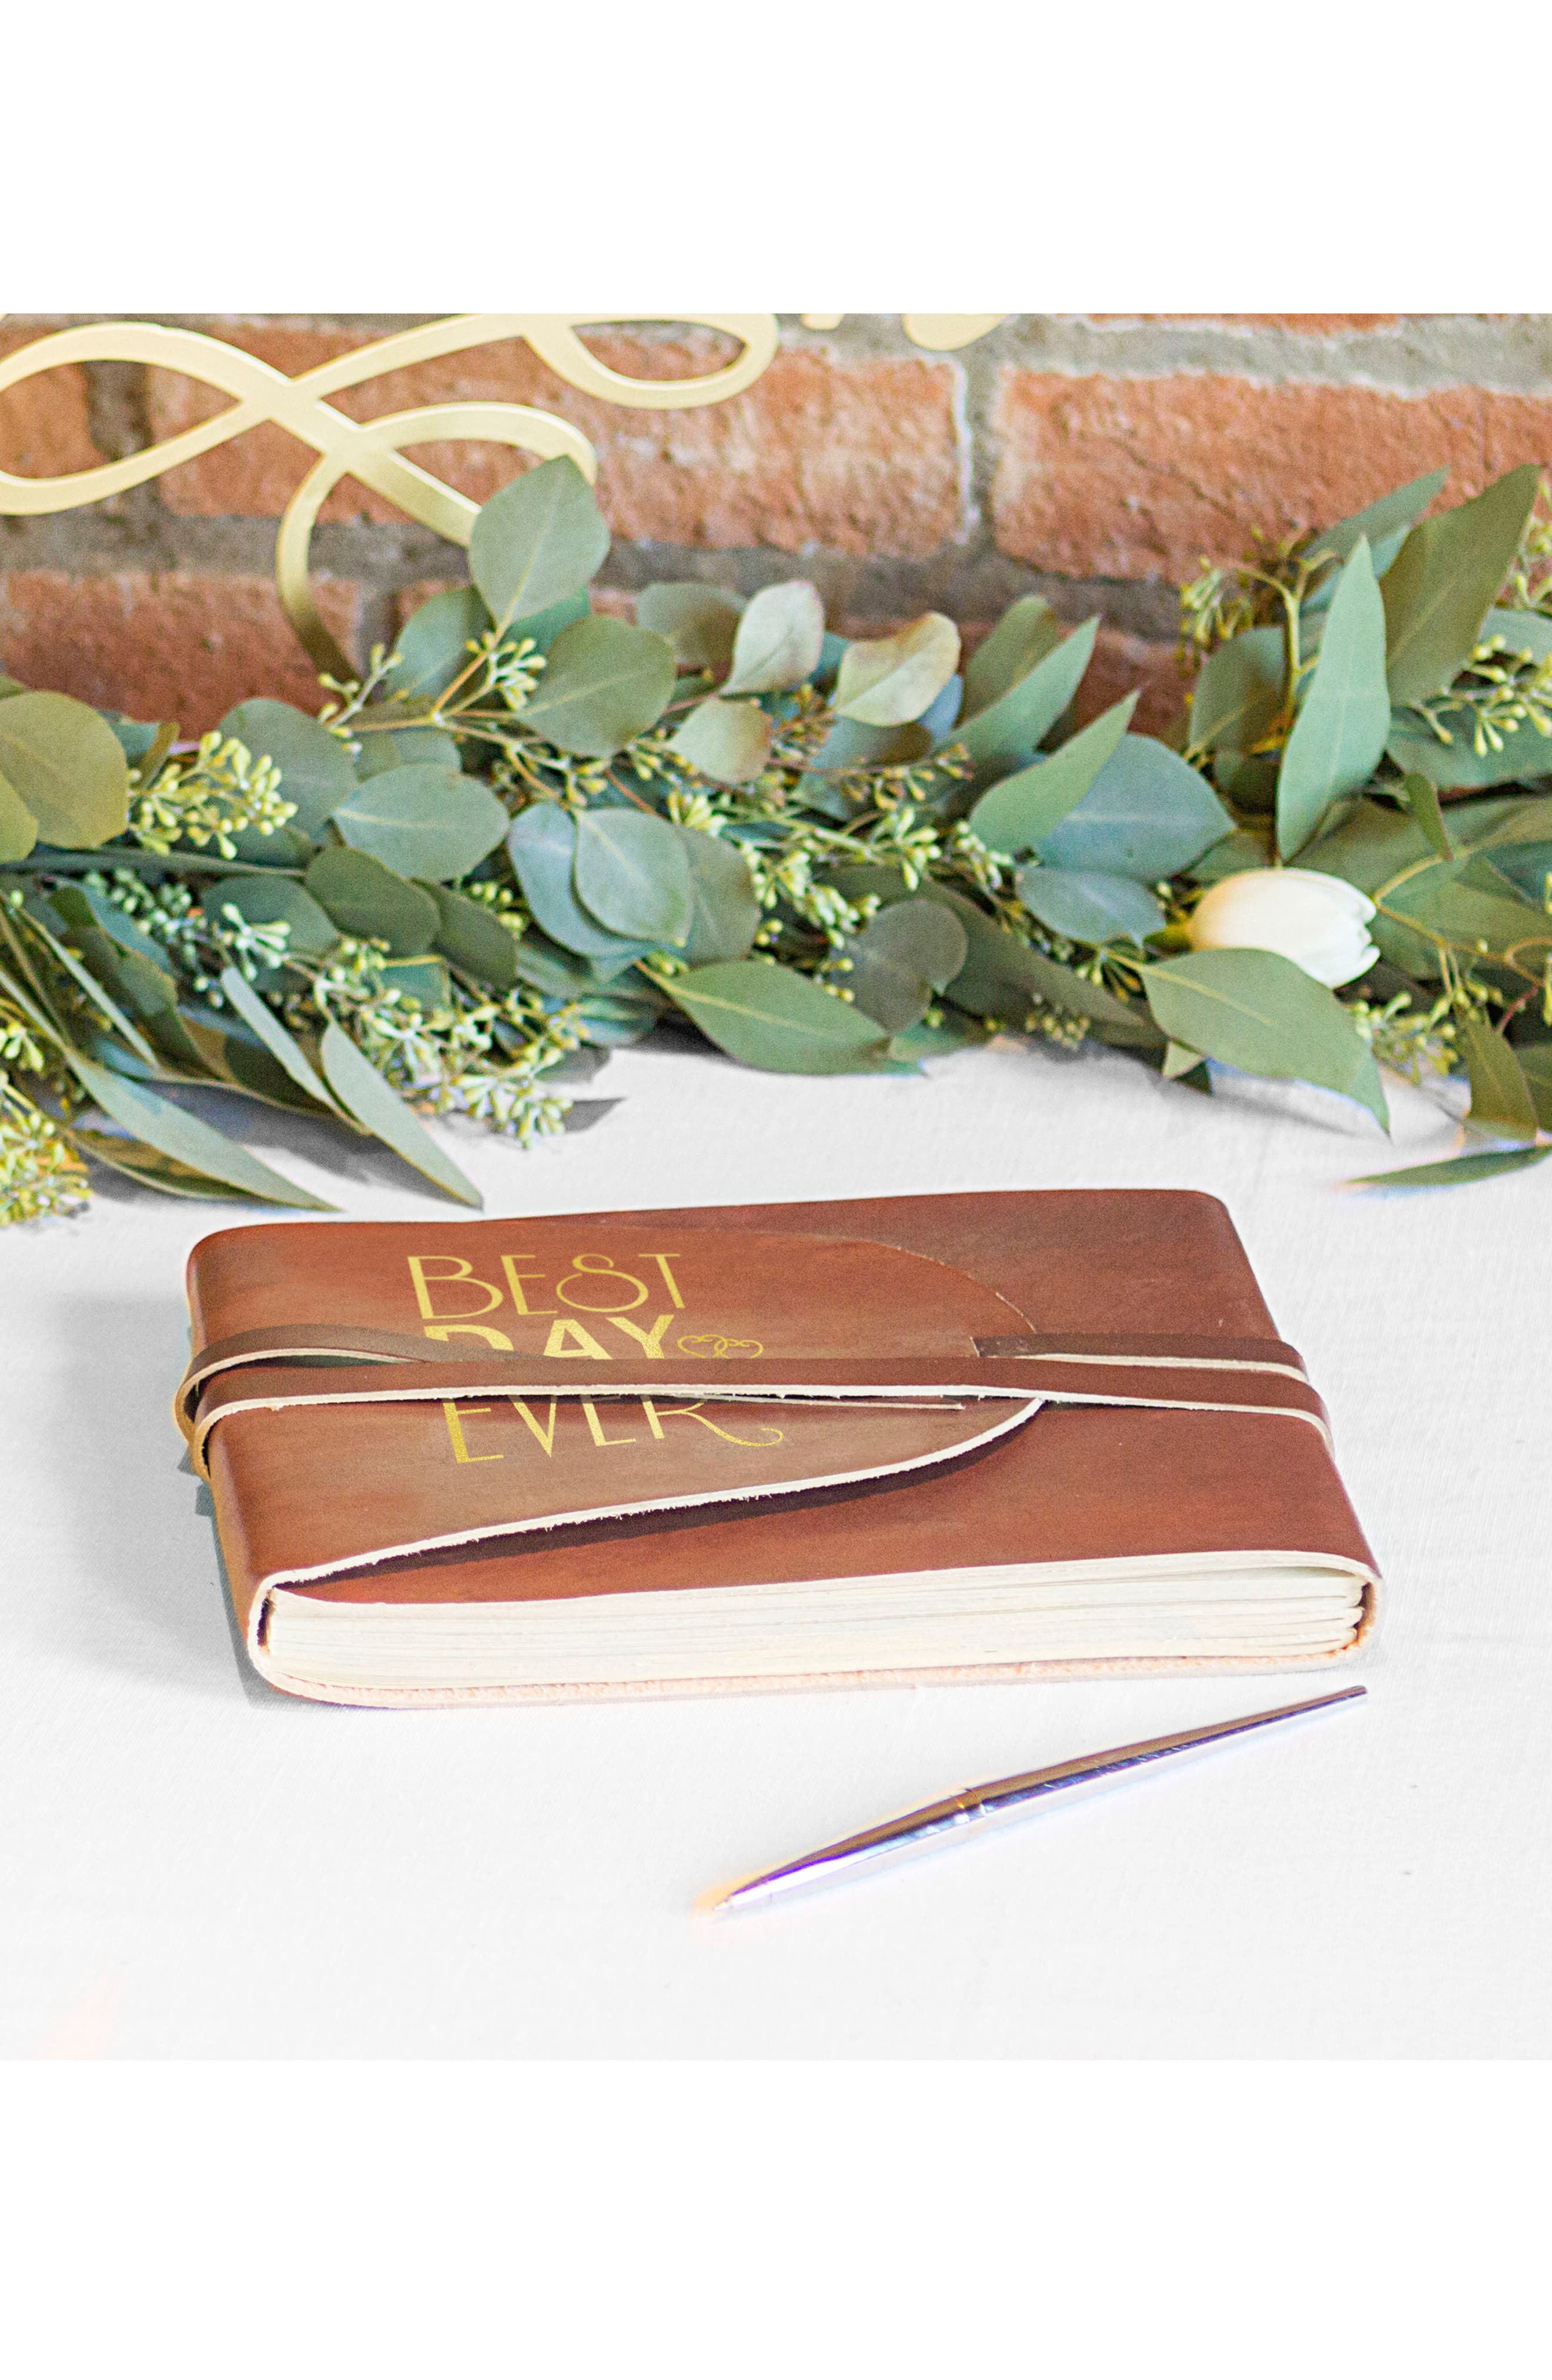 Best Day Ever Leather Guest Book,                             Alternate thumbnail 15, color,                             710